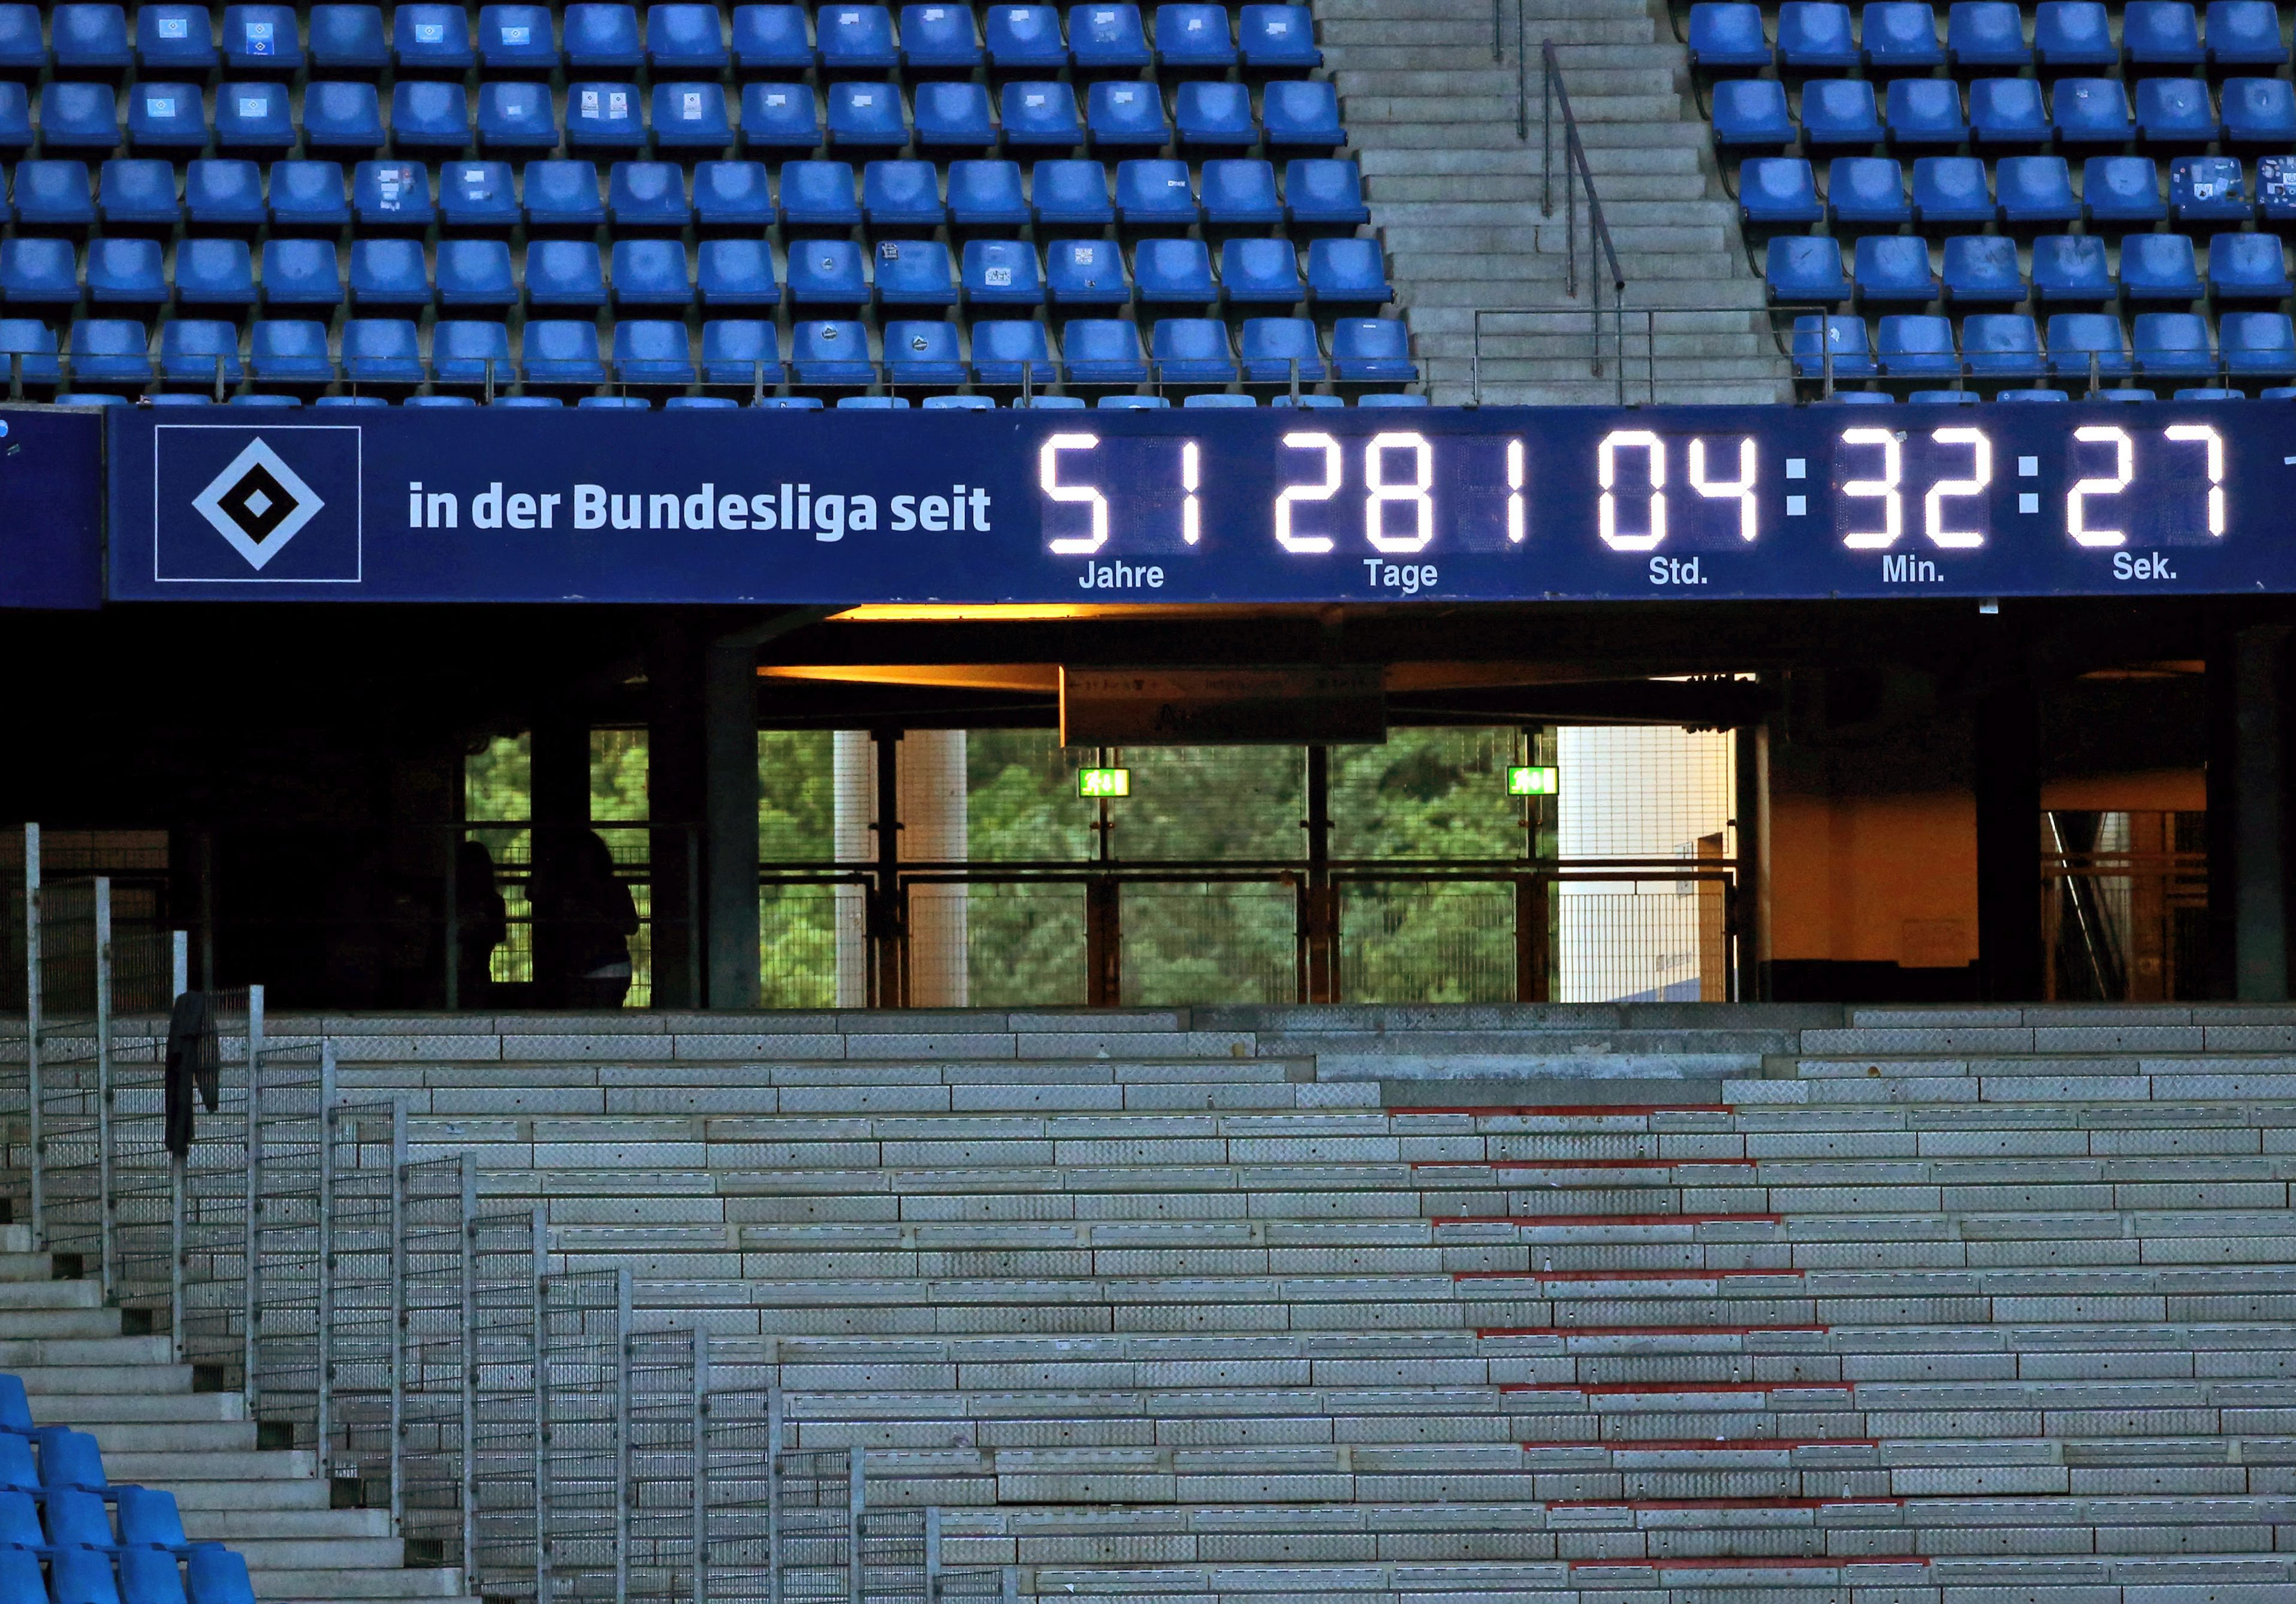 Bumb Karlsruhe Bundesliga 2015 16 Five Things To Expect From The German League